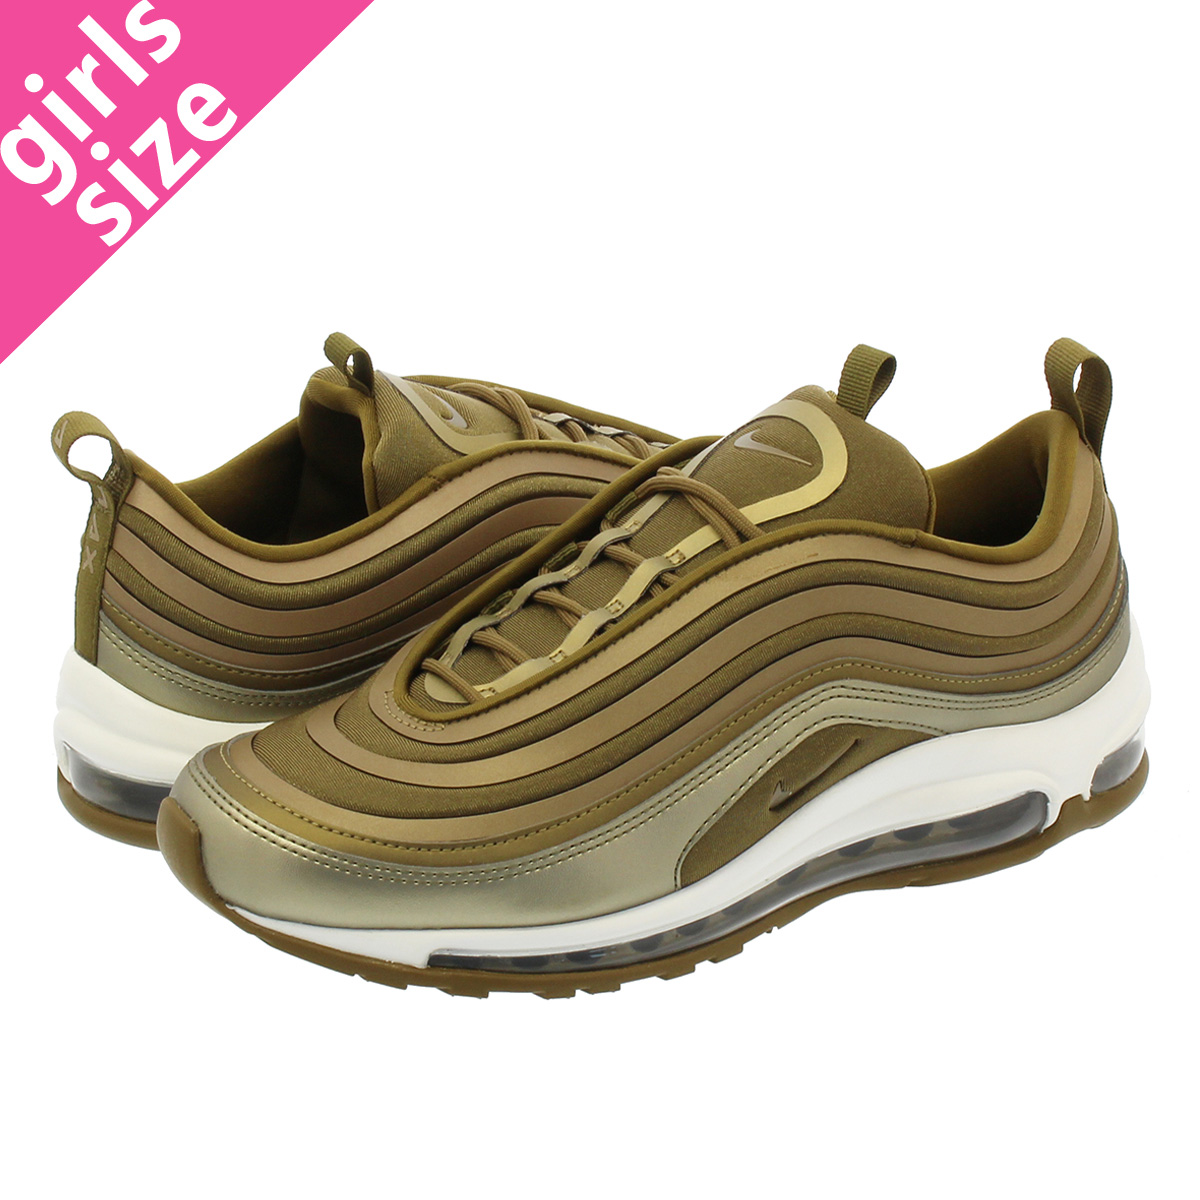 9679352b6d Categories. « All Categories · Shoes · Women's Shoes · Sneakers · NIKE WMNS  AIR MAX 97 UL '17 Nike women Air Max ultra '17 METALLIC